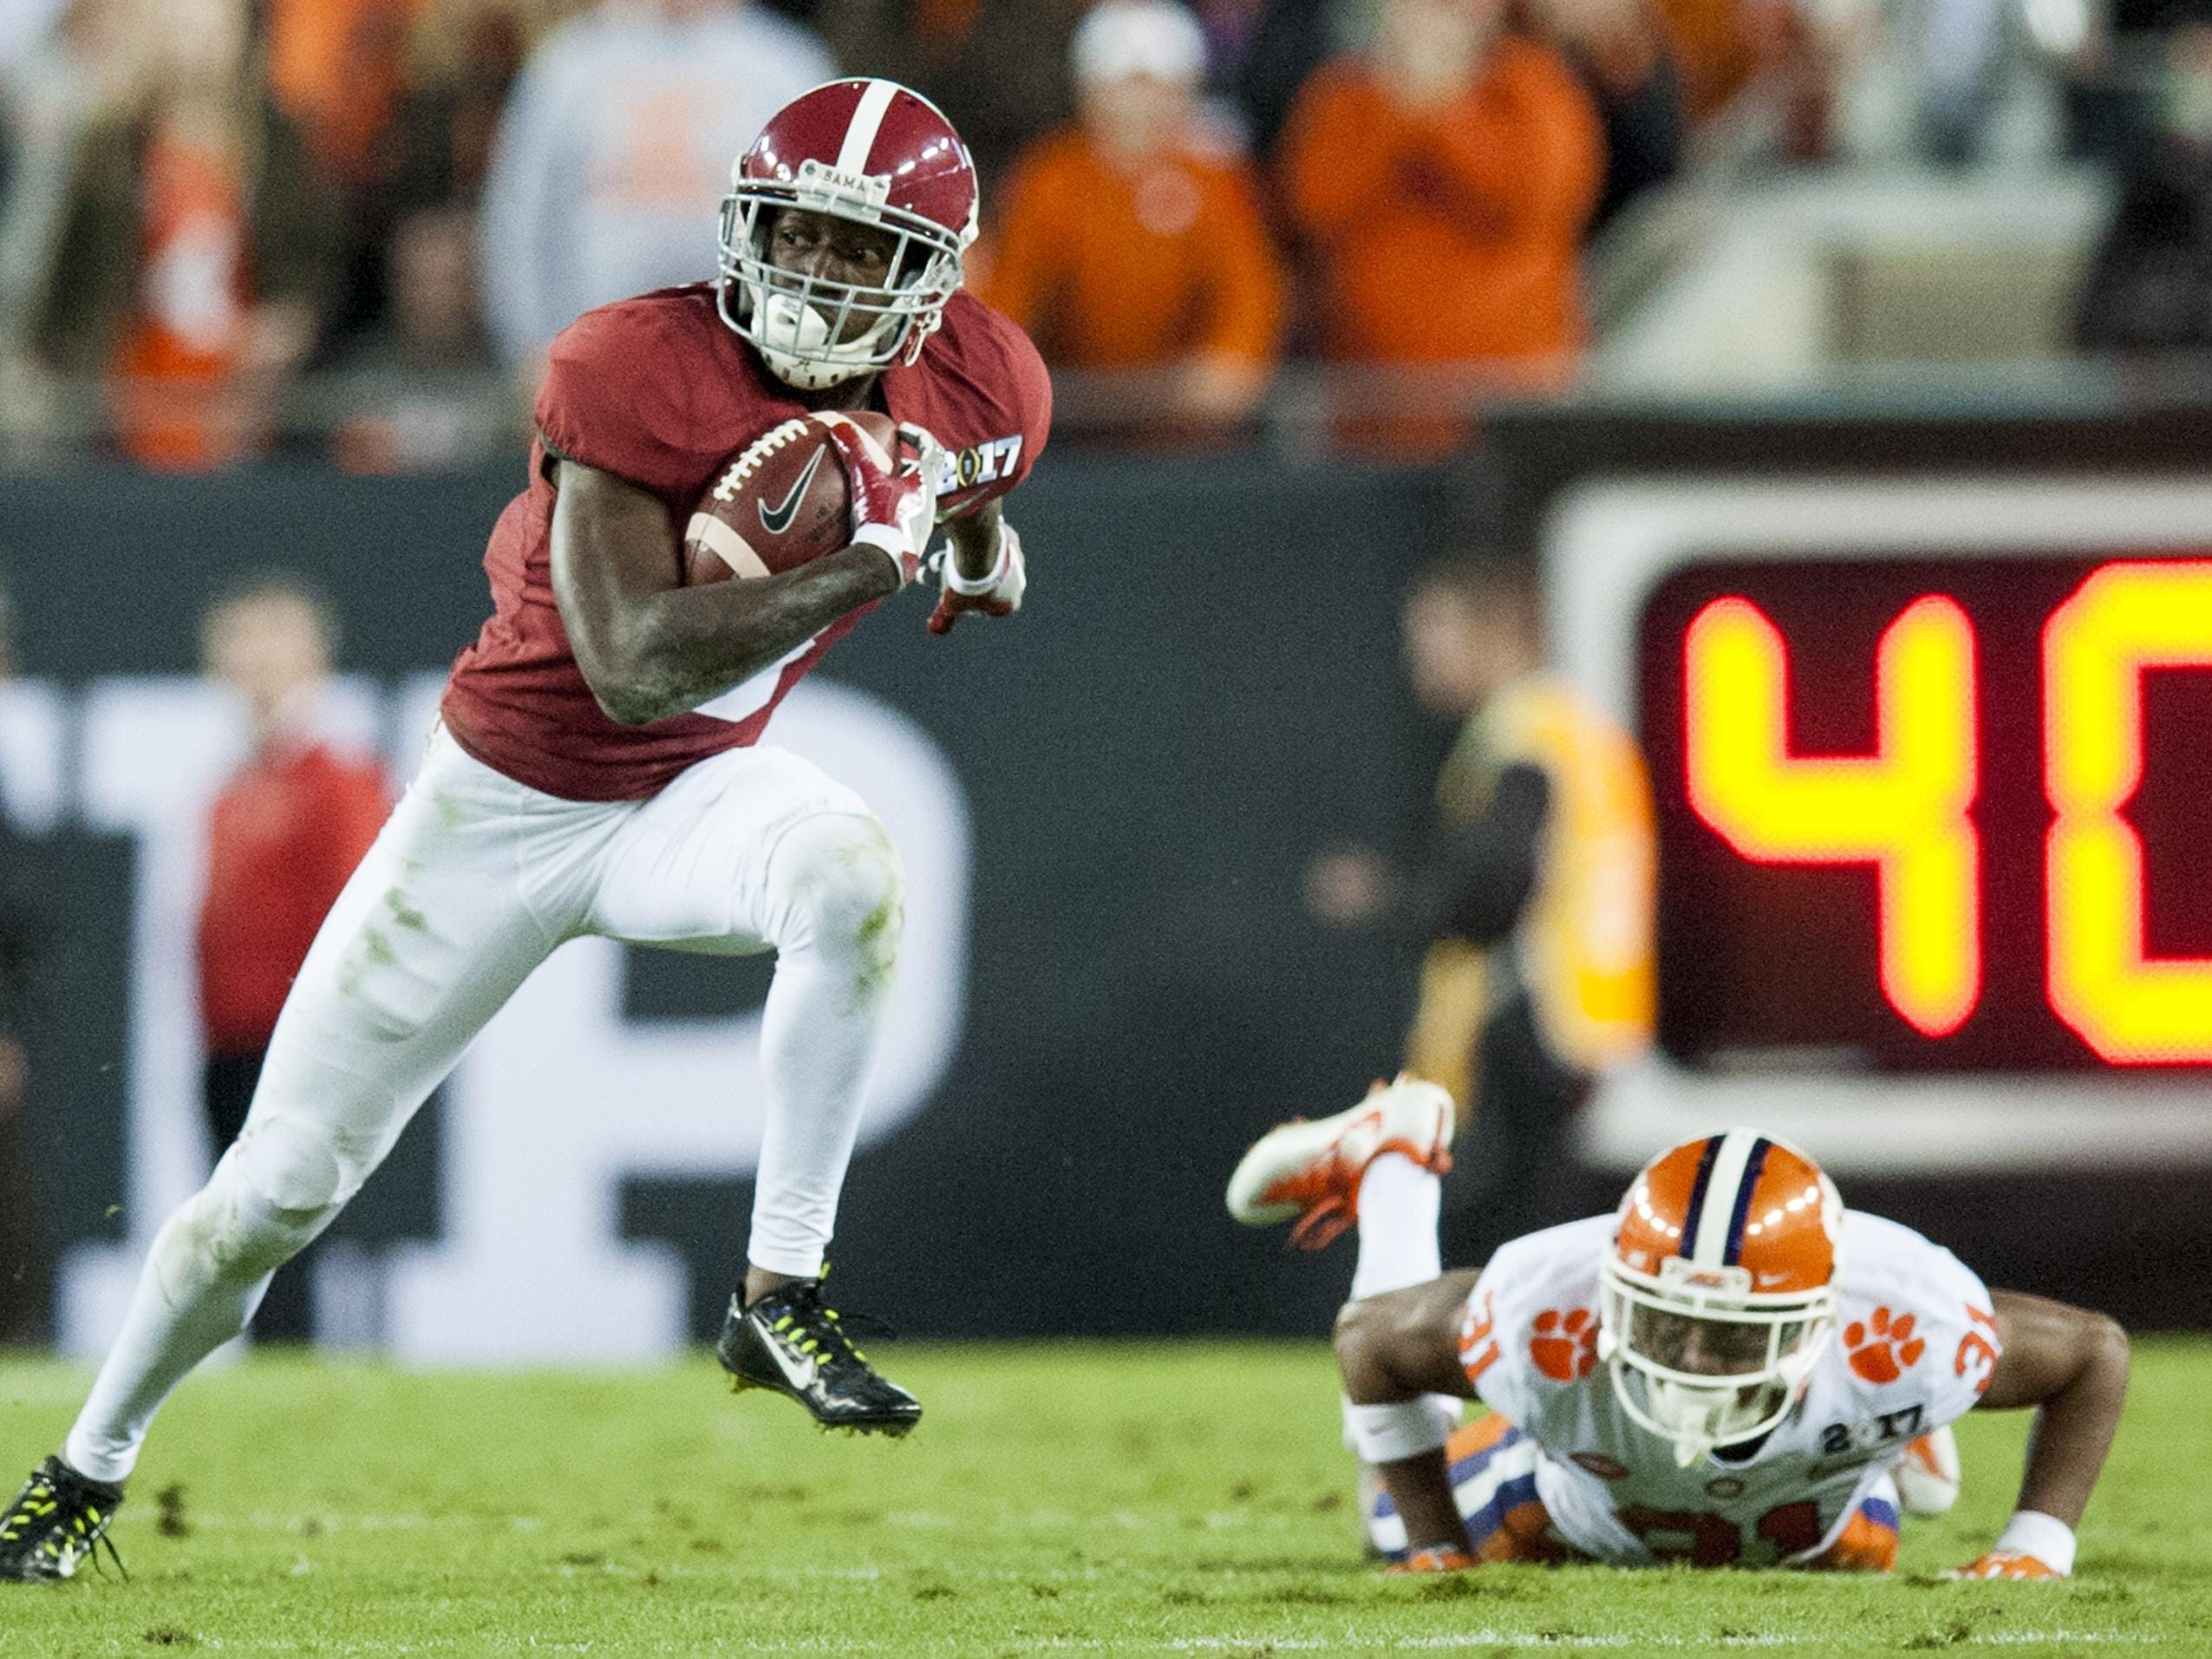 Junior wideout Calvin Ridley leads Alabama's corps of wide receivers.